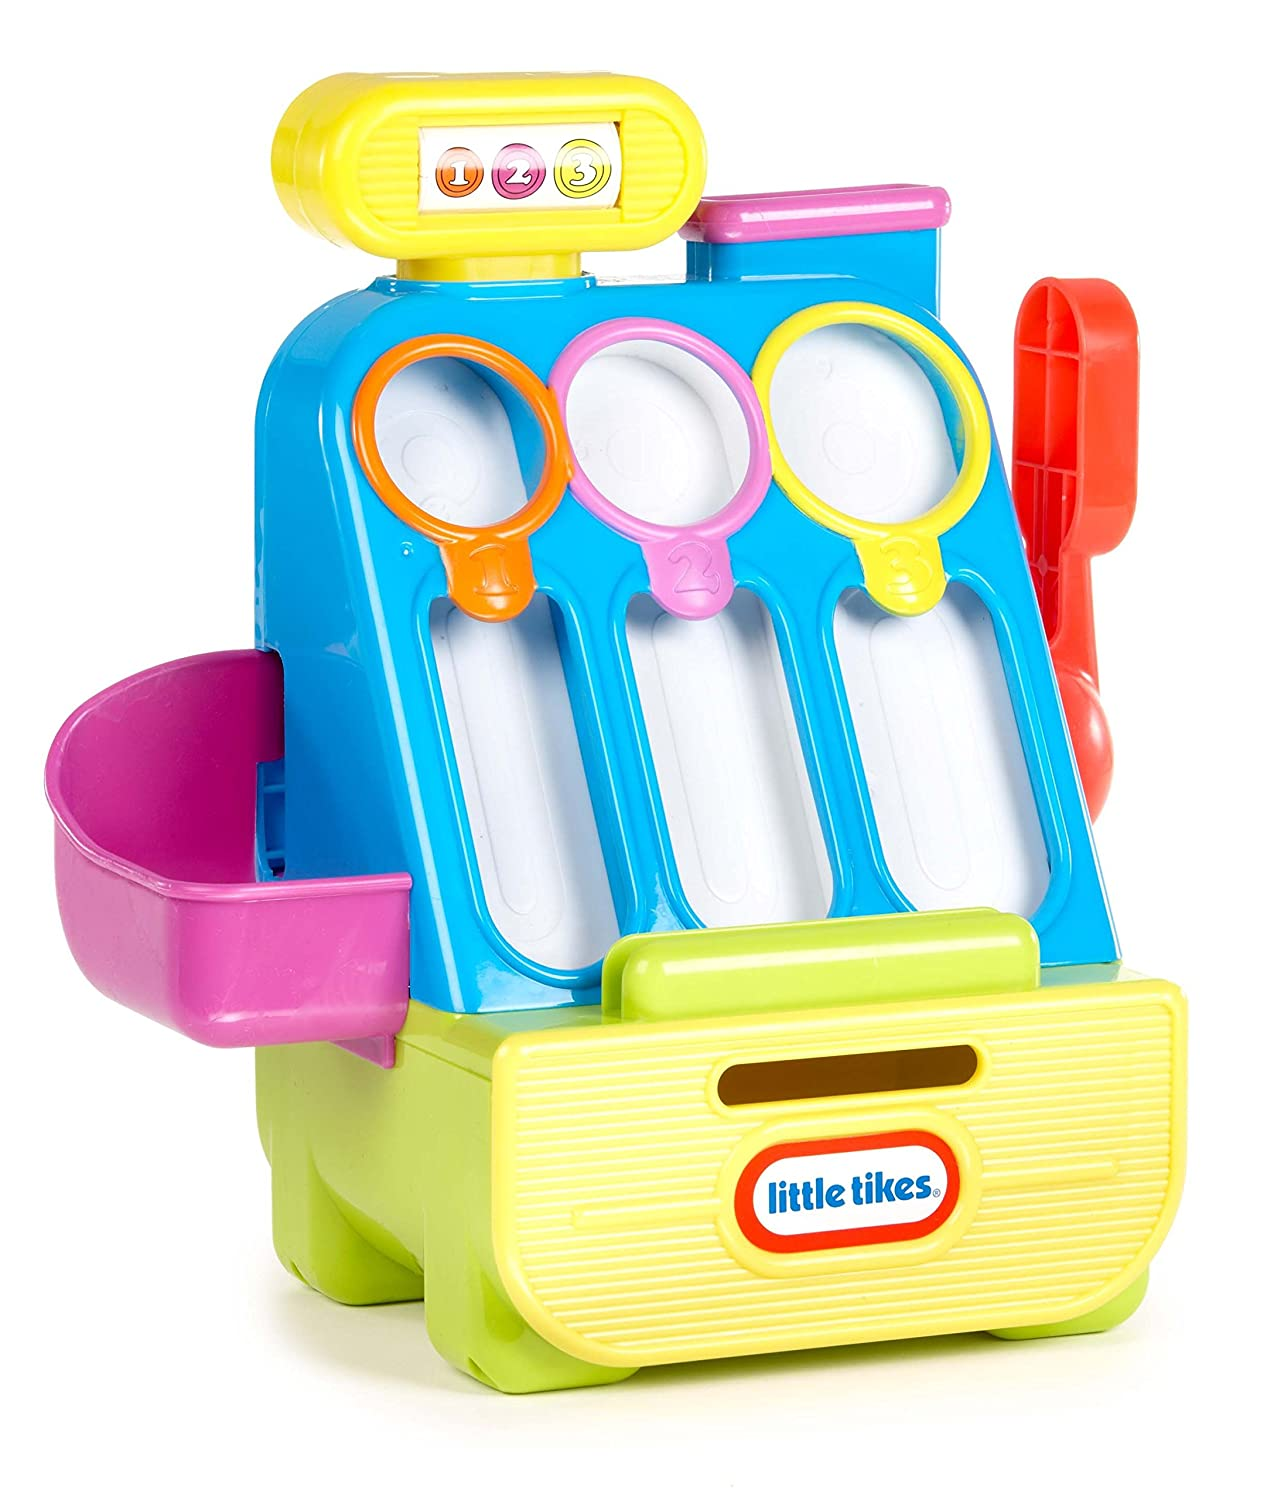 Amazon.com: Little Tikes Count \'n Play Cash Register Playset: Toys ...